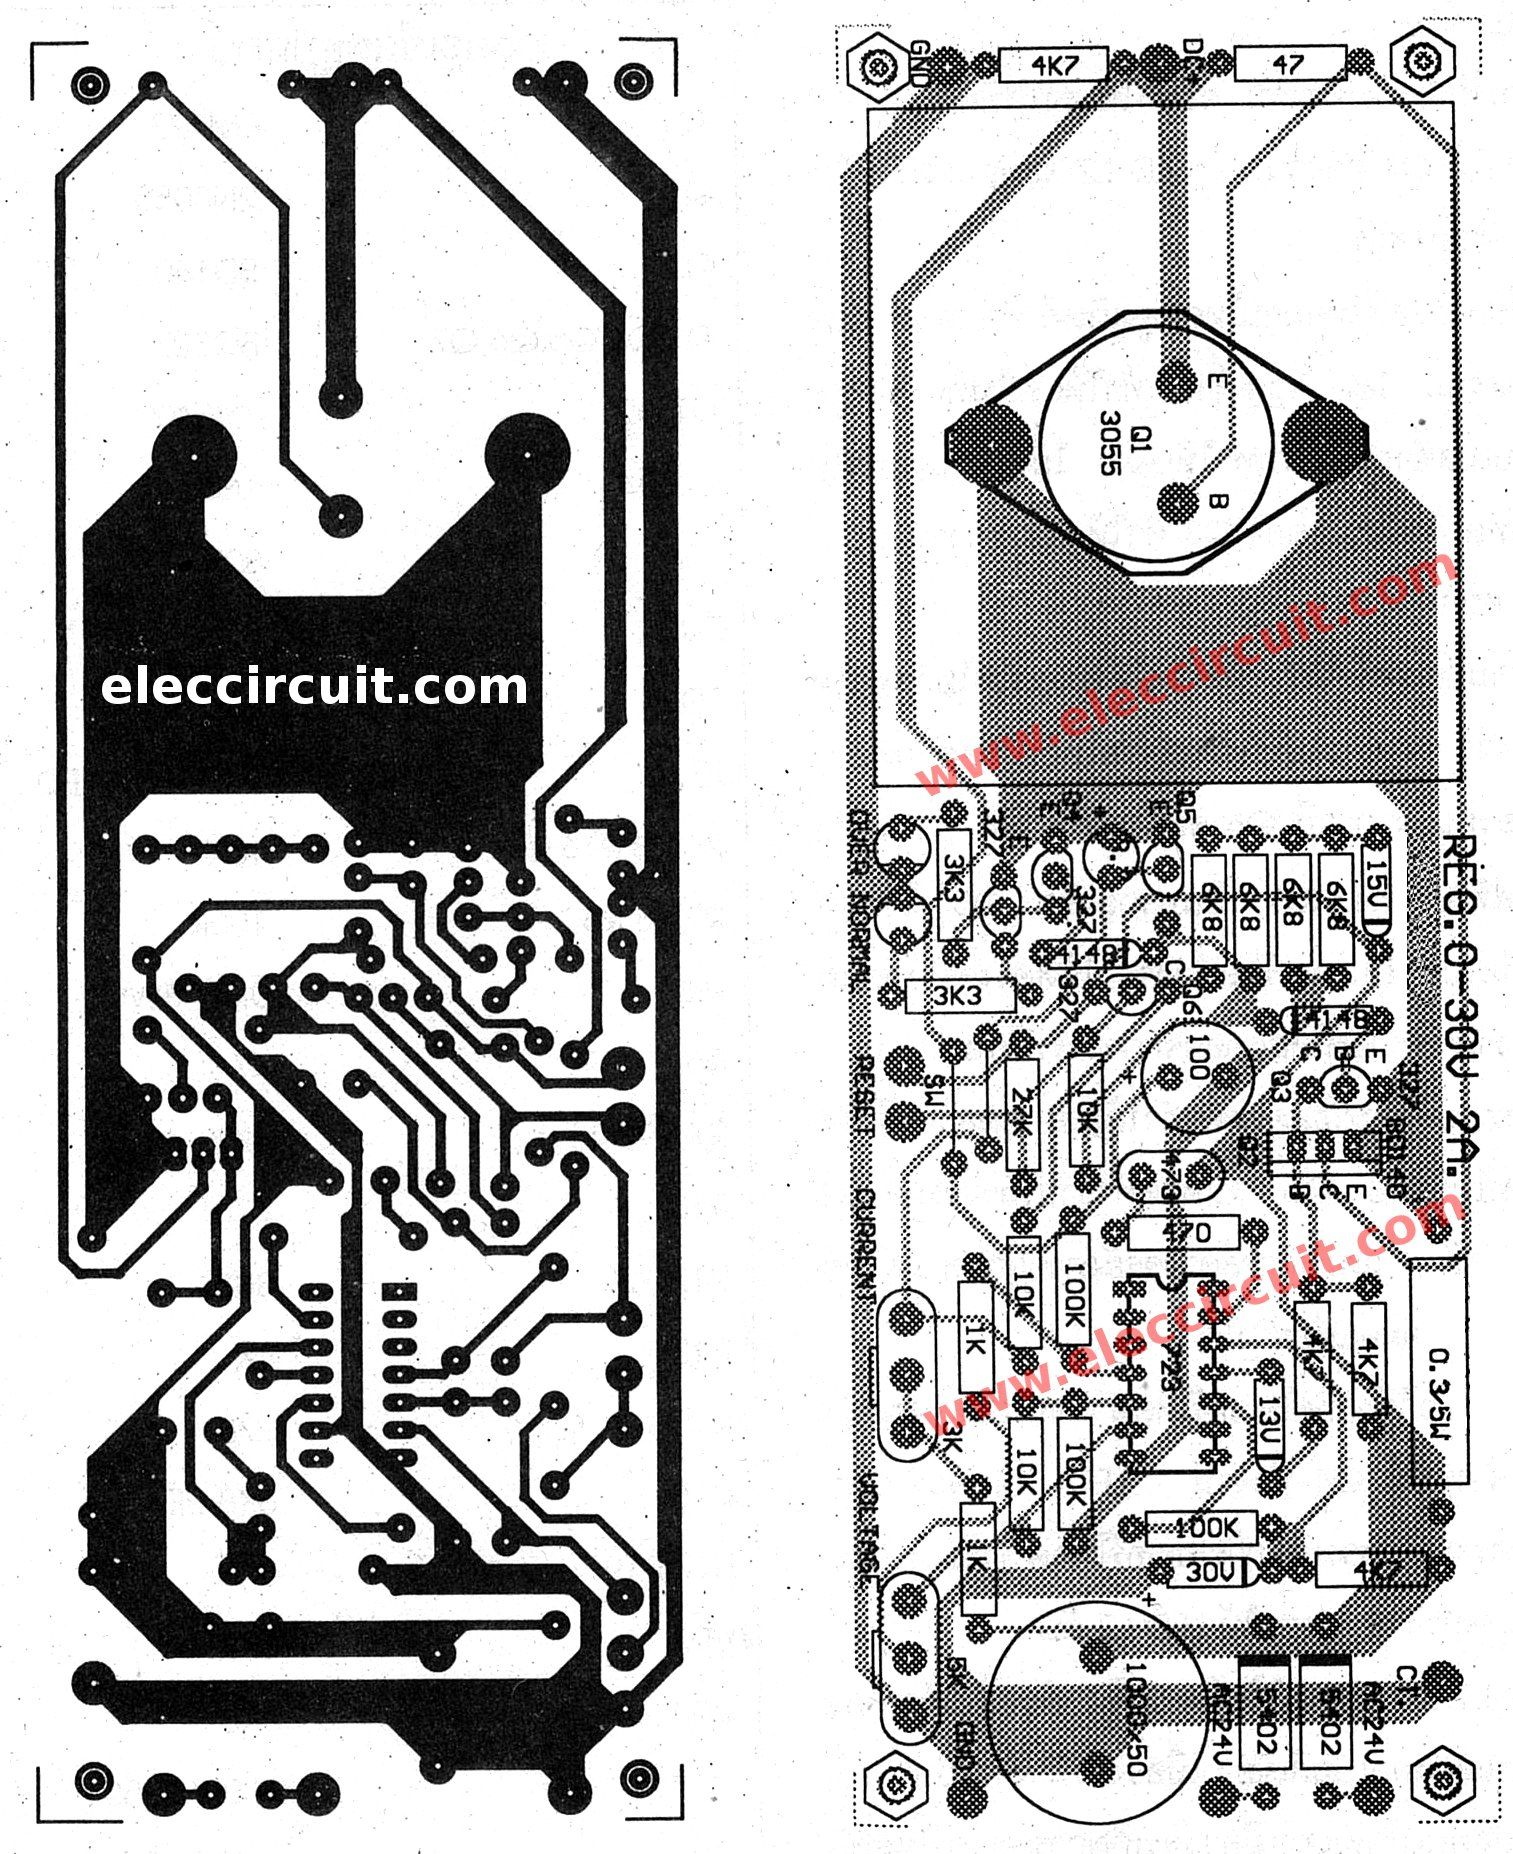 0 30v Variable Power Supply Circuit Diagram At 3a Eleccircuitcom Simple Remote Control Tester This Is The 30v0 2a Adjustable Voltage And Current Regulator That Developed From Cheap Laboratory Dc Project Using